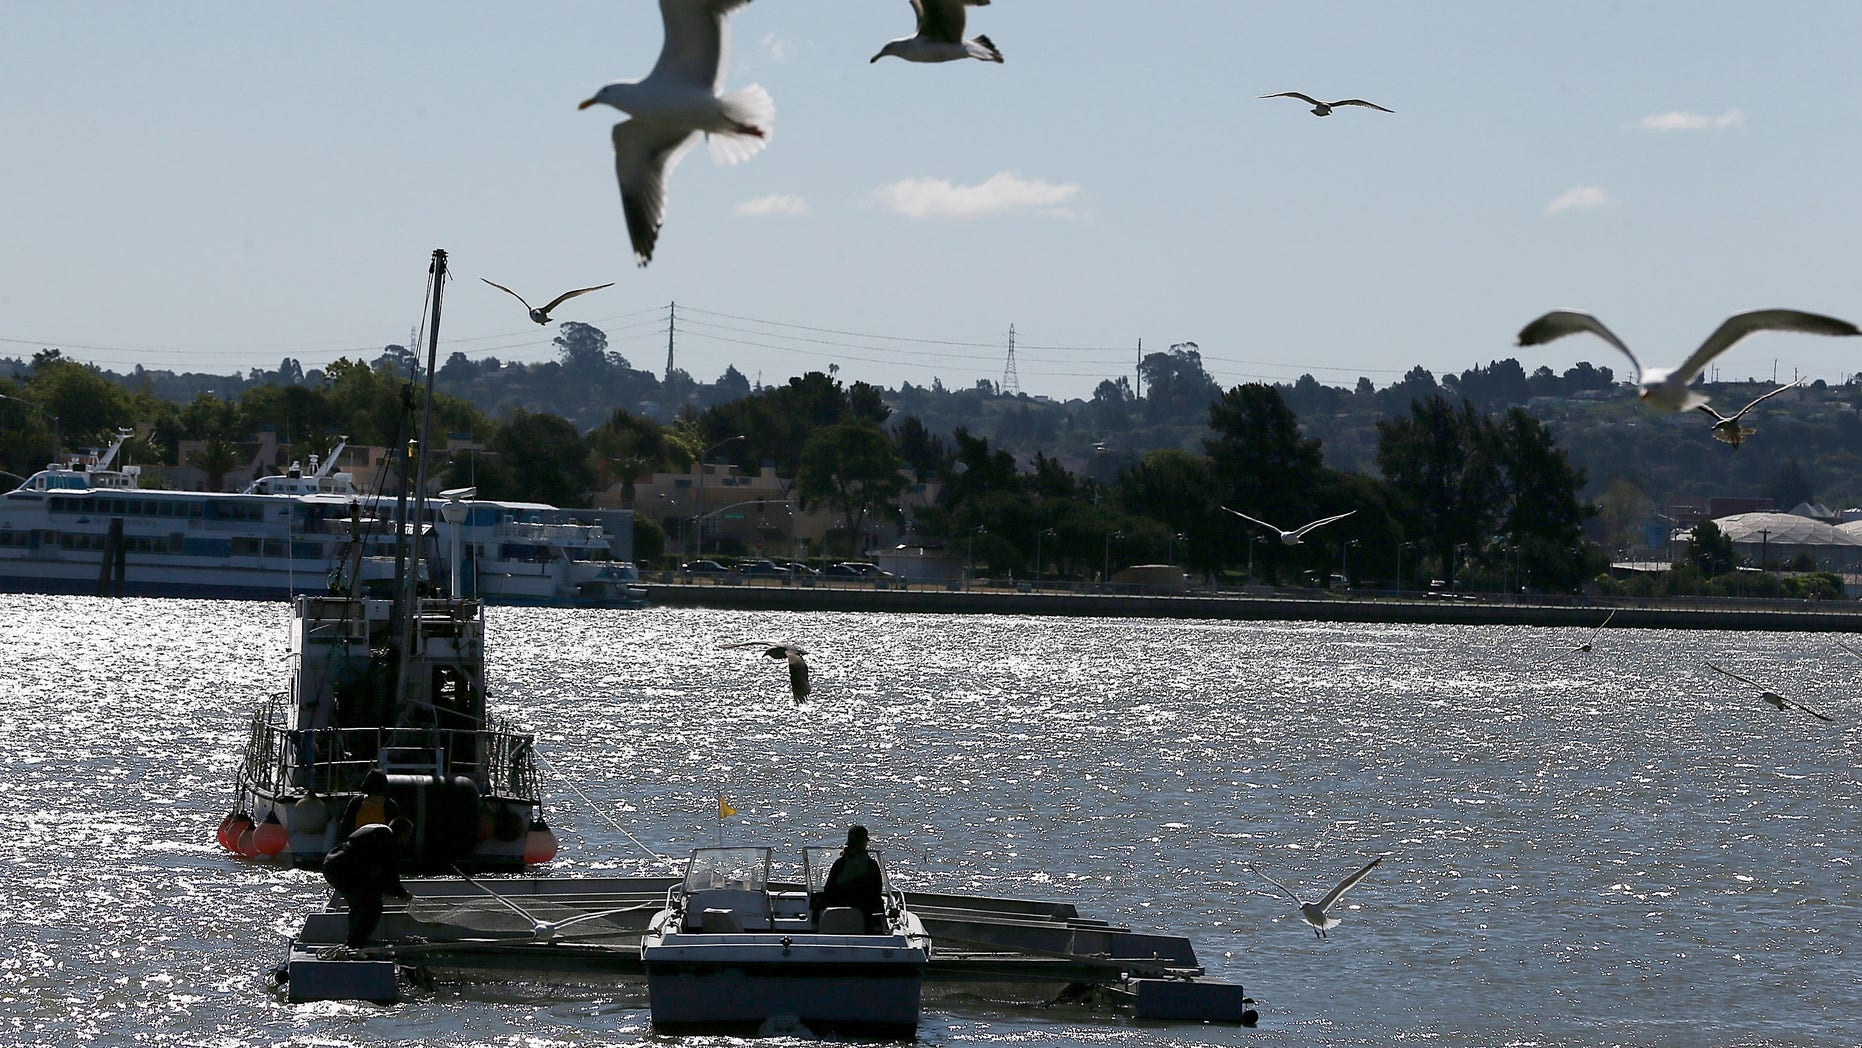 VALLEJO, CA - APRIL 22:  Workers with the Fishery Foundation of California move a barge filled with thousands of fingerling Chinook salmon that will be released into the Mare Island Strait on April 22, 2014 in Vallejo, California. As California continues to suffer through its worse drought in history, low water levels on the state's rivers have forced wildlife officials to truck an estimated 30 million young Chinook salmon hundreds of miles toward the Pacific Ocean in tanker trucks lto assist the fish with migration.  (Photo by Justin Sullivan/Getty Images)